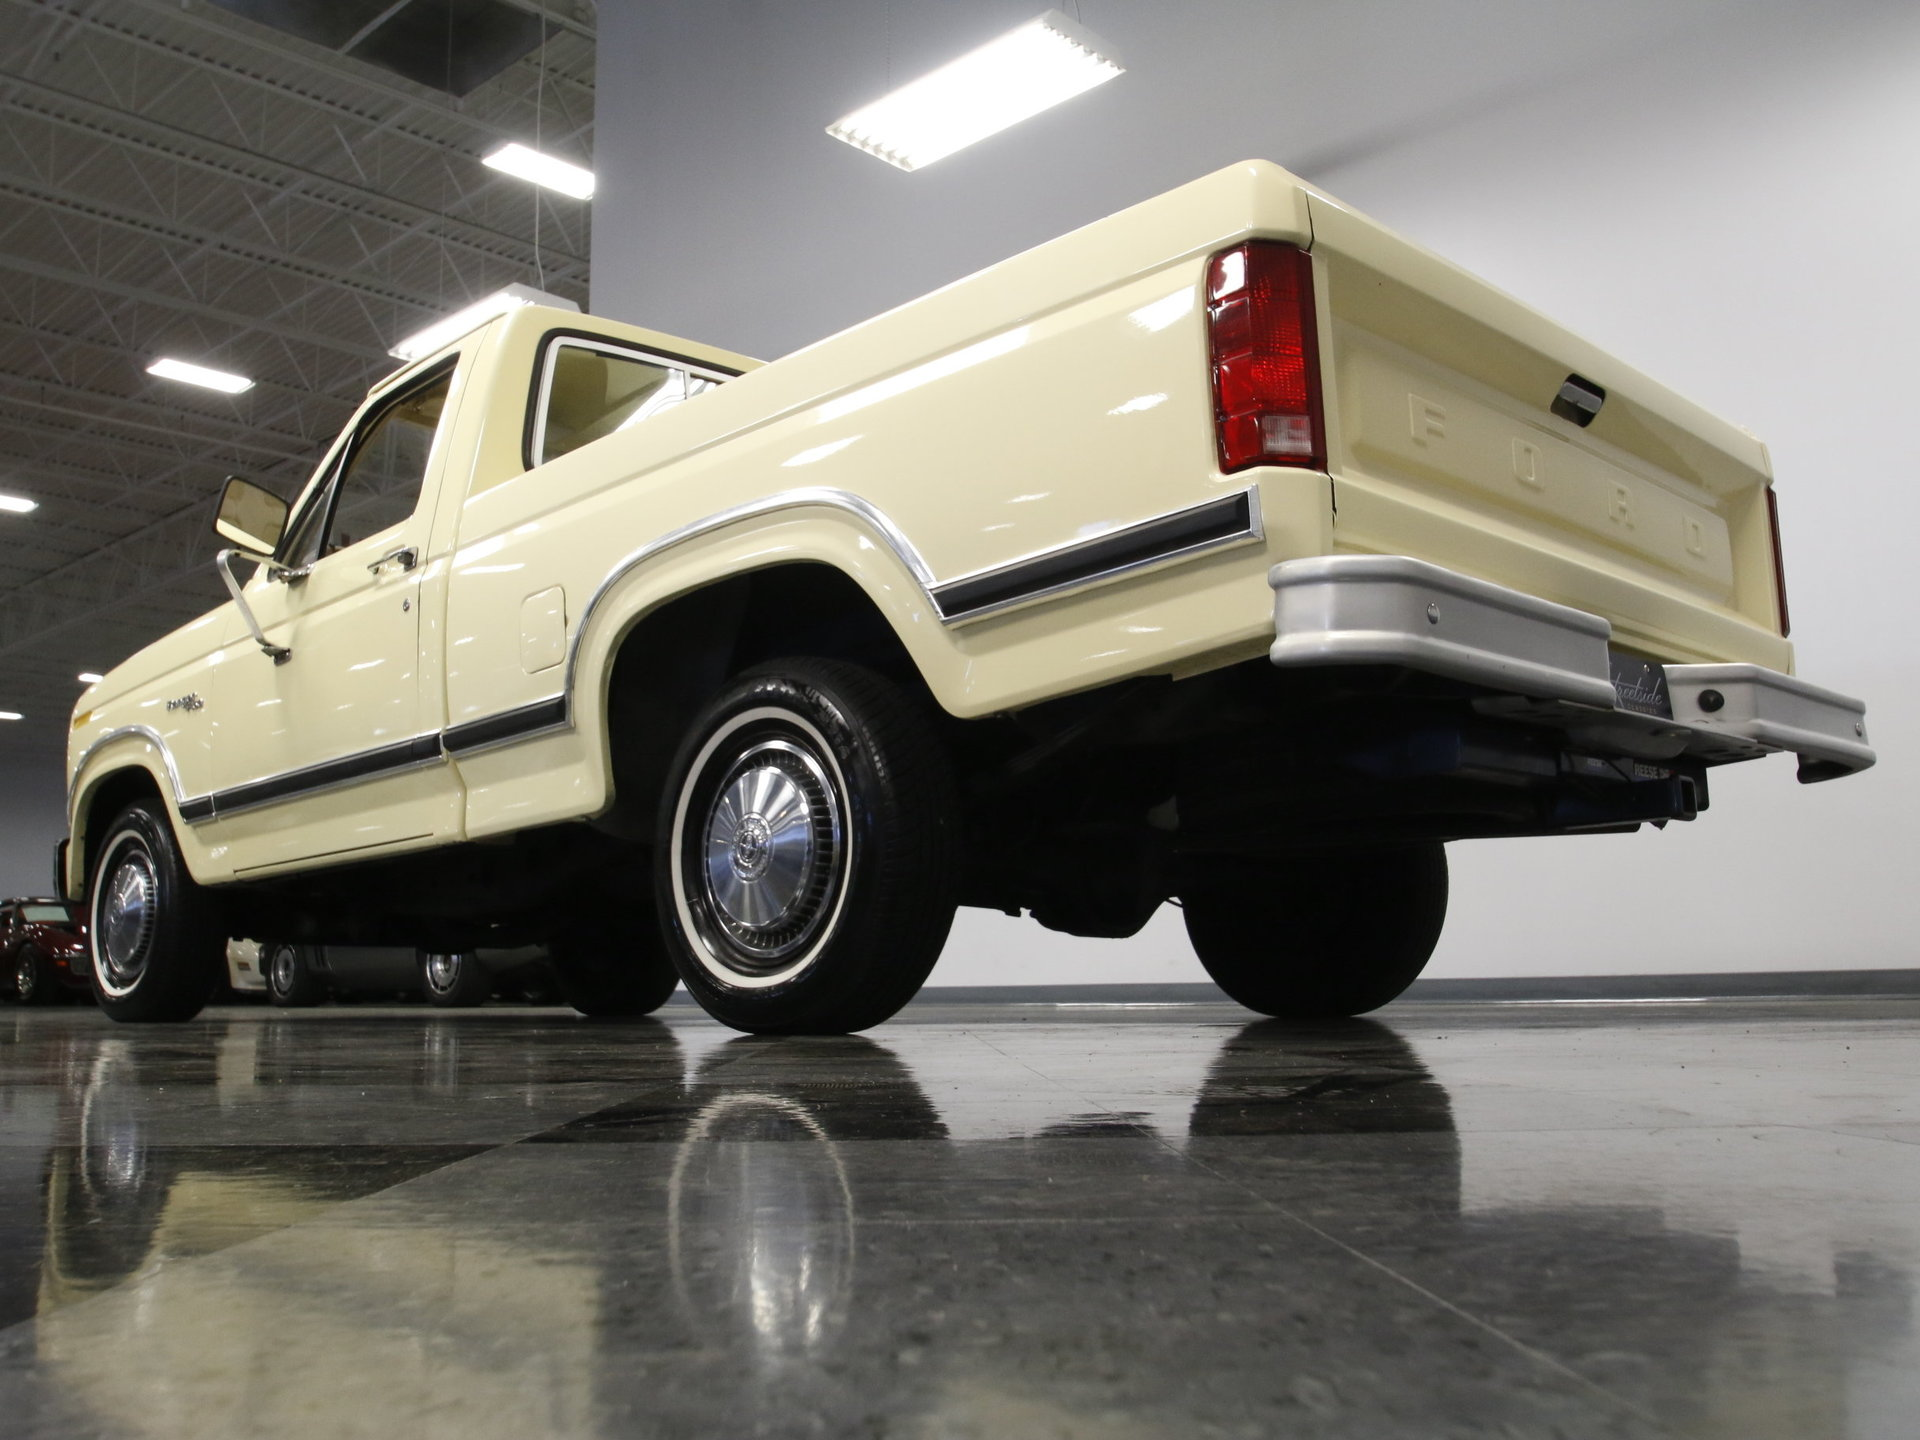 1980 Ford F 150 Streetside Classics The Nations Trusted Classic 4x4 Pickup View 360